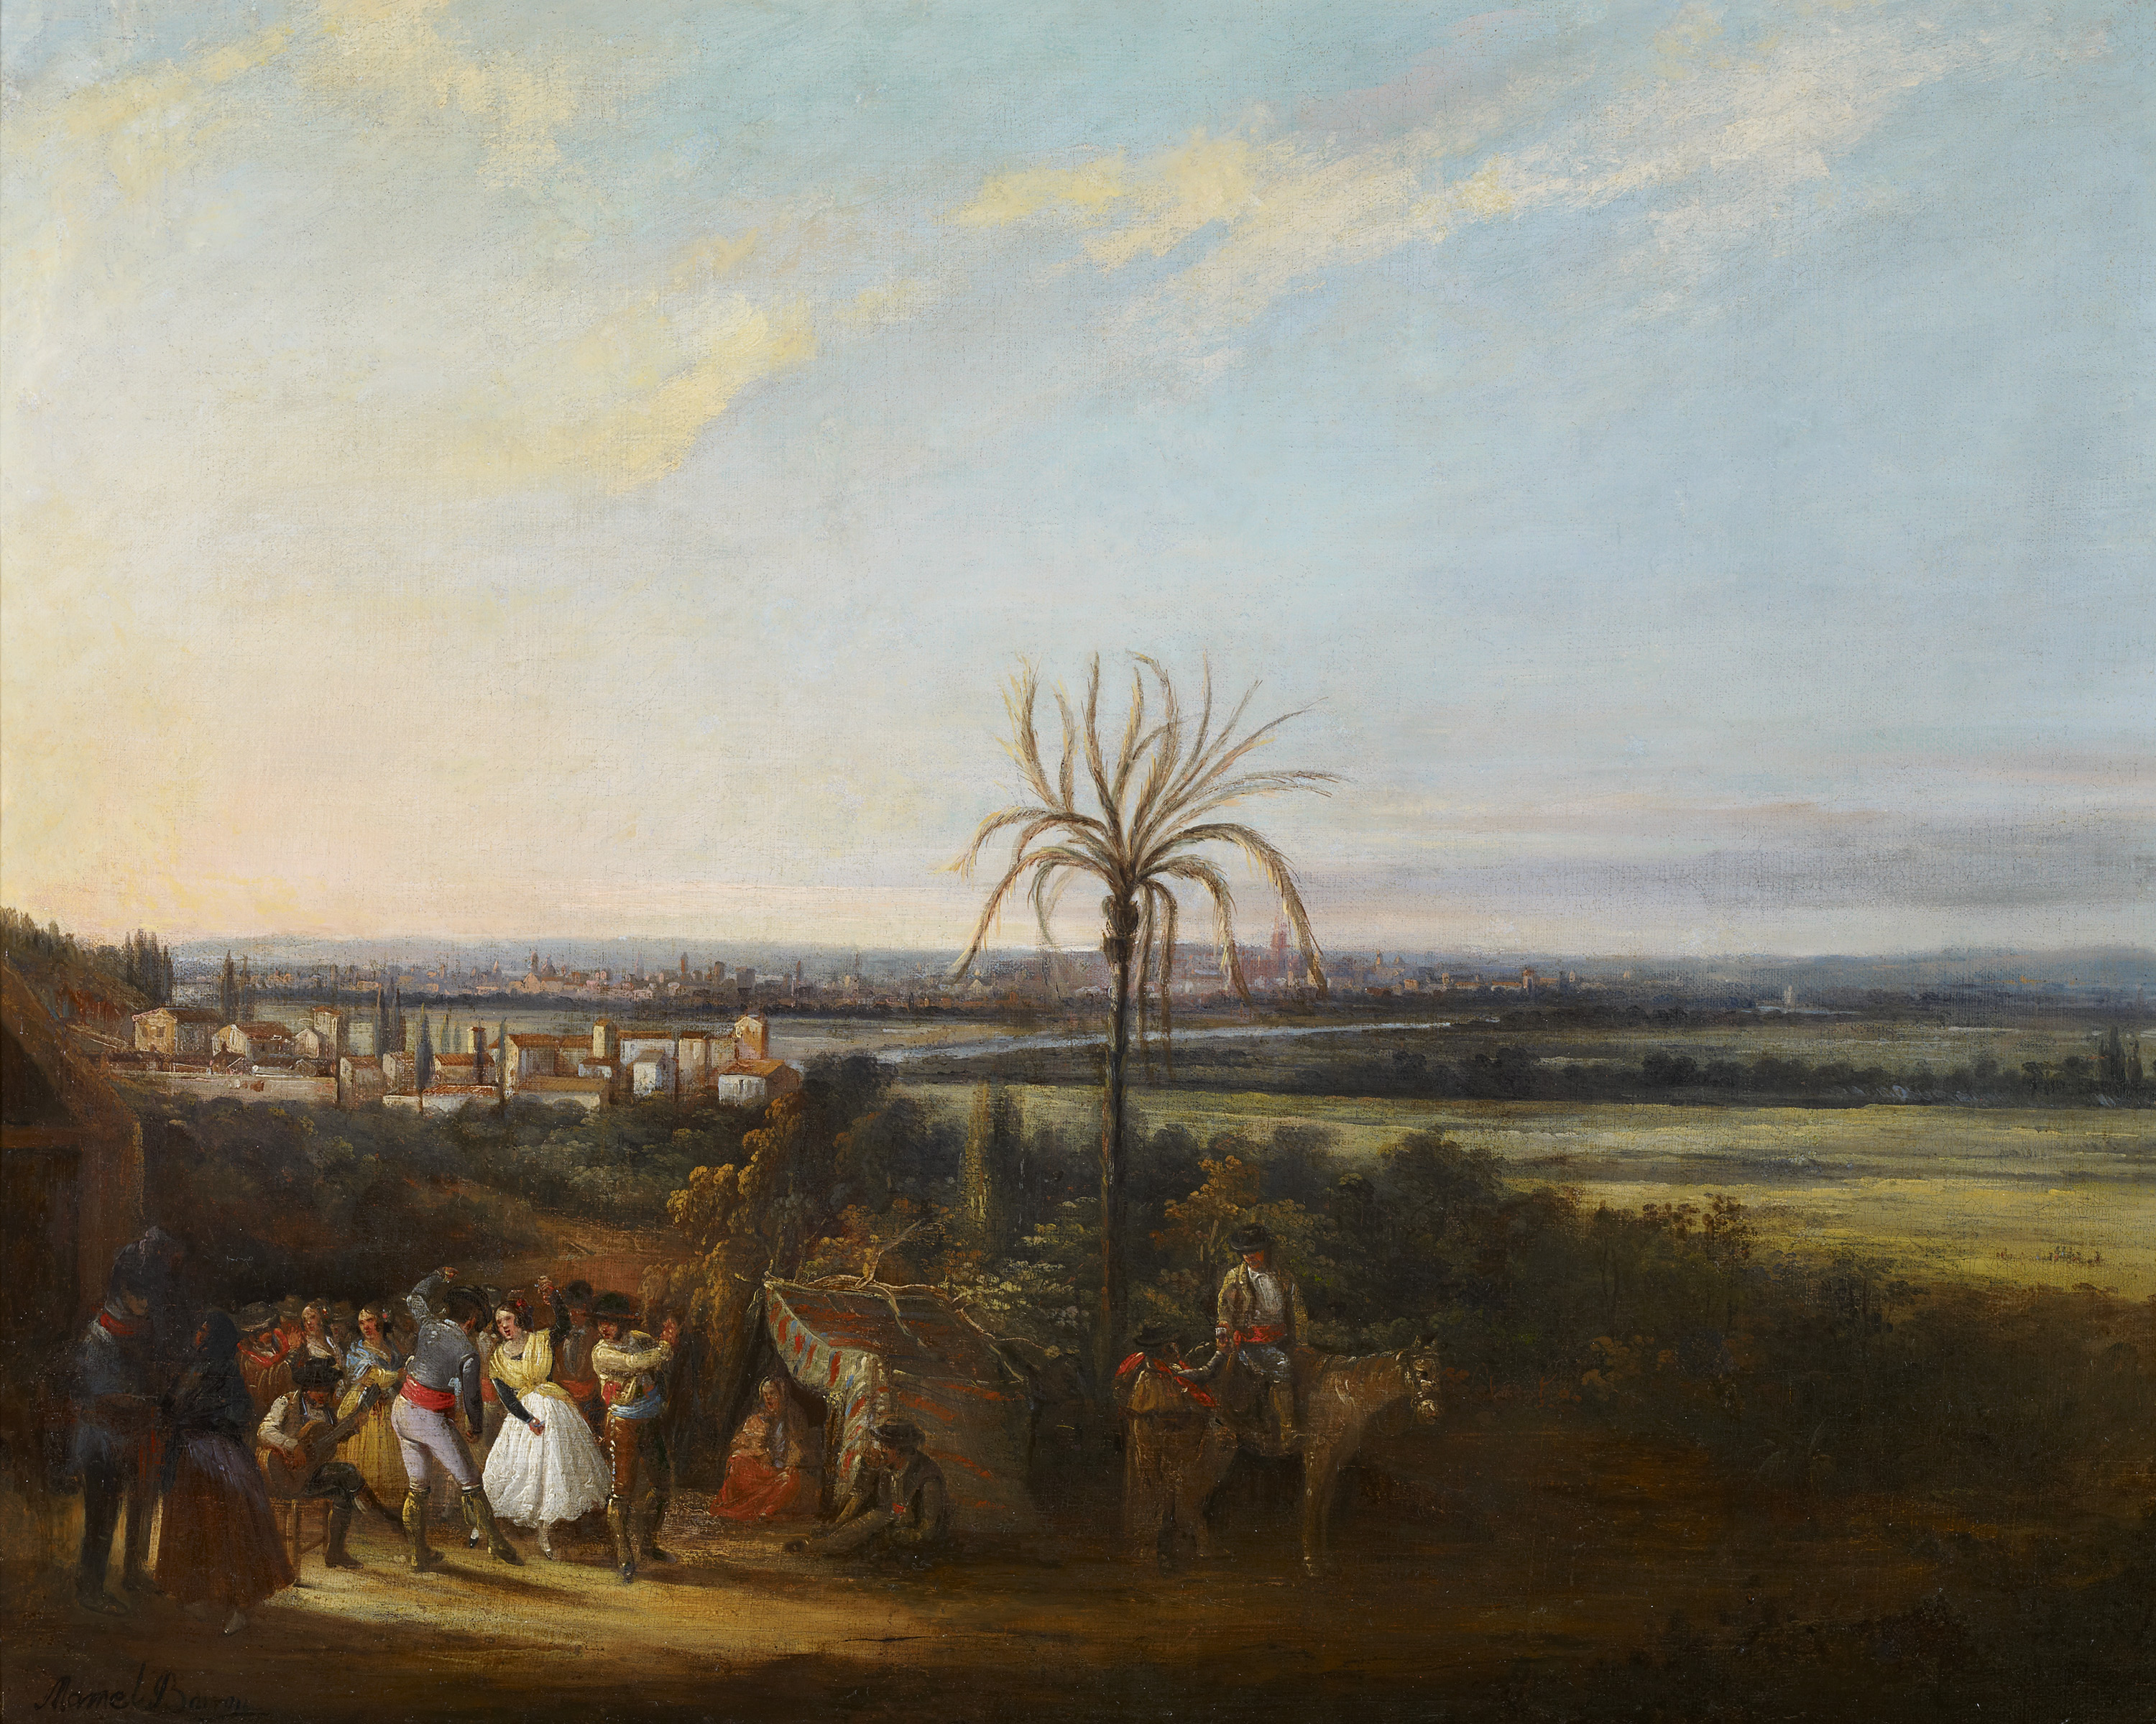 Merrymaking near Seville